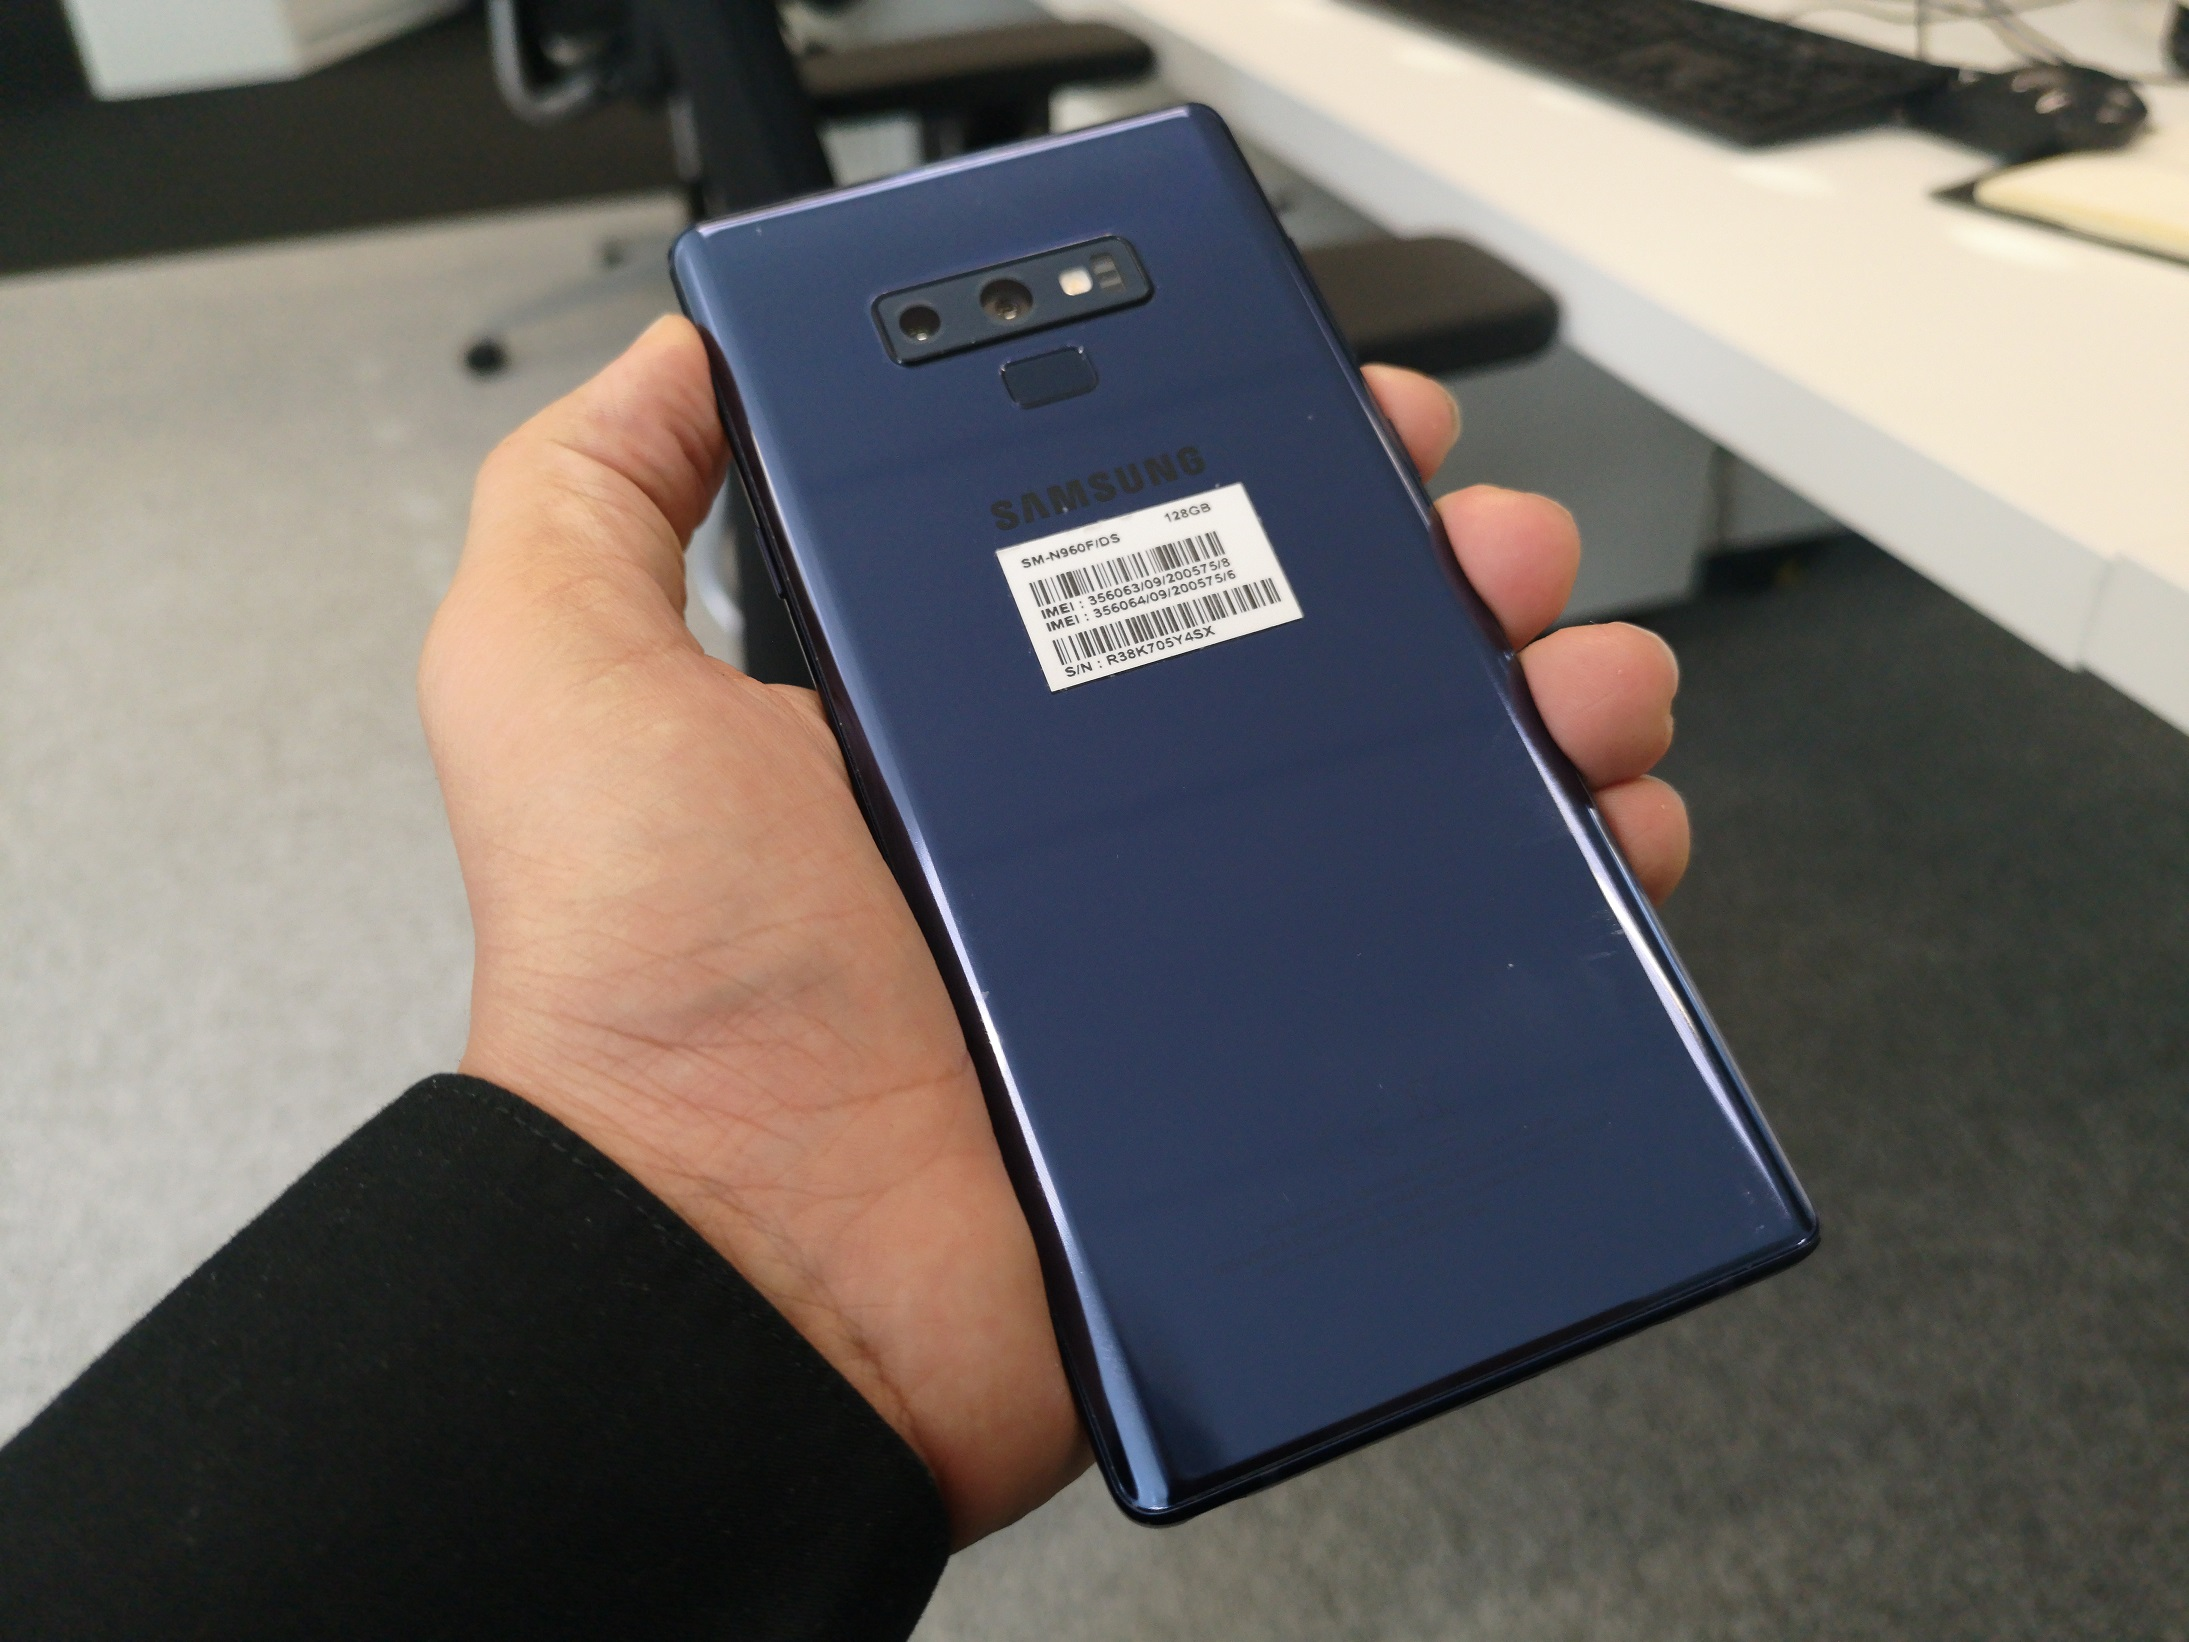 DxOMark lui offre au Samsung Galaxy Note 9 un score de 103 en photo